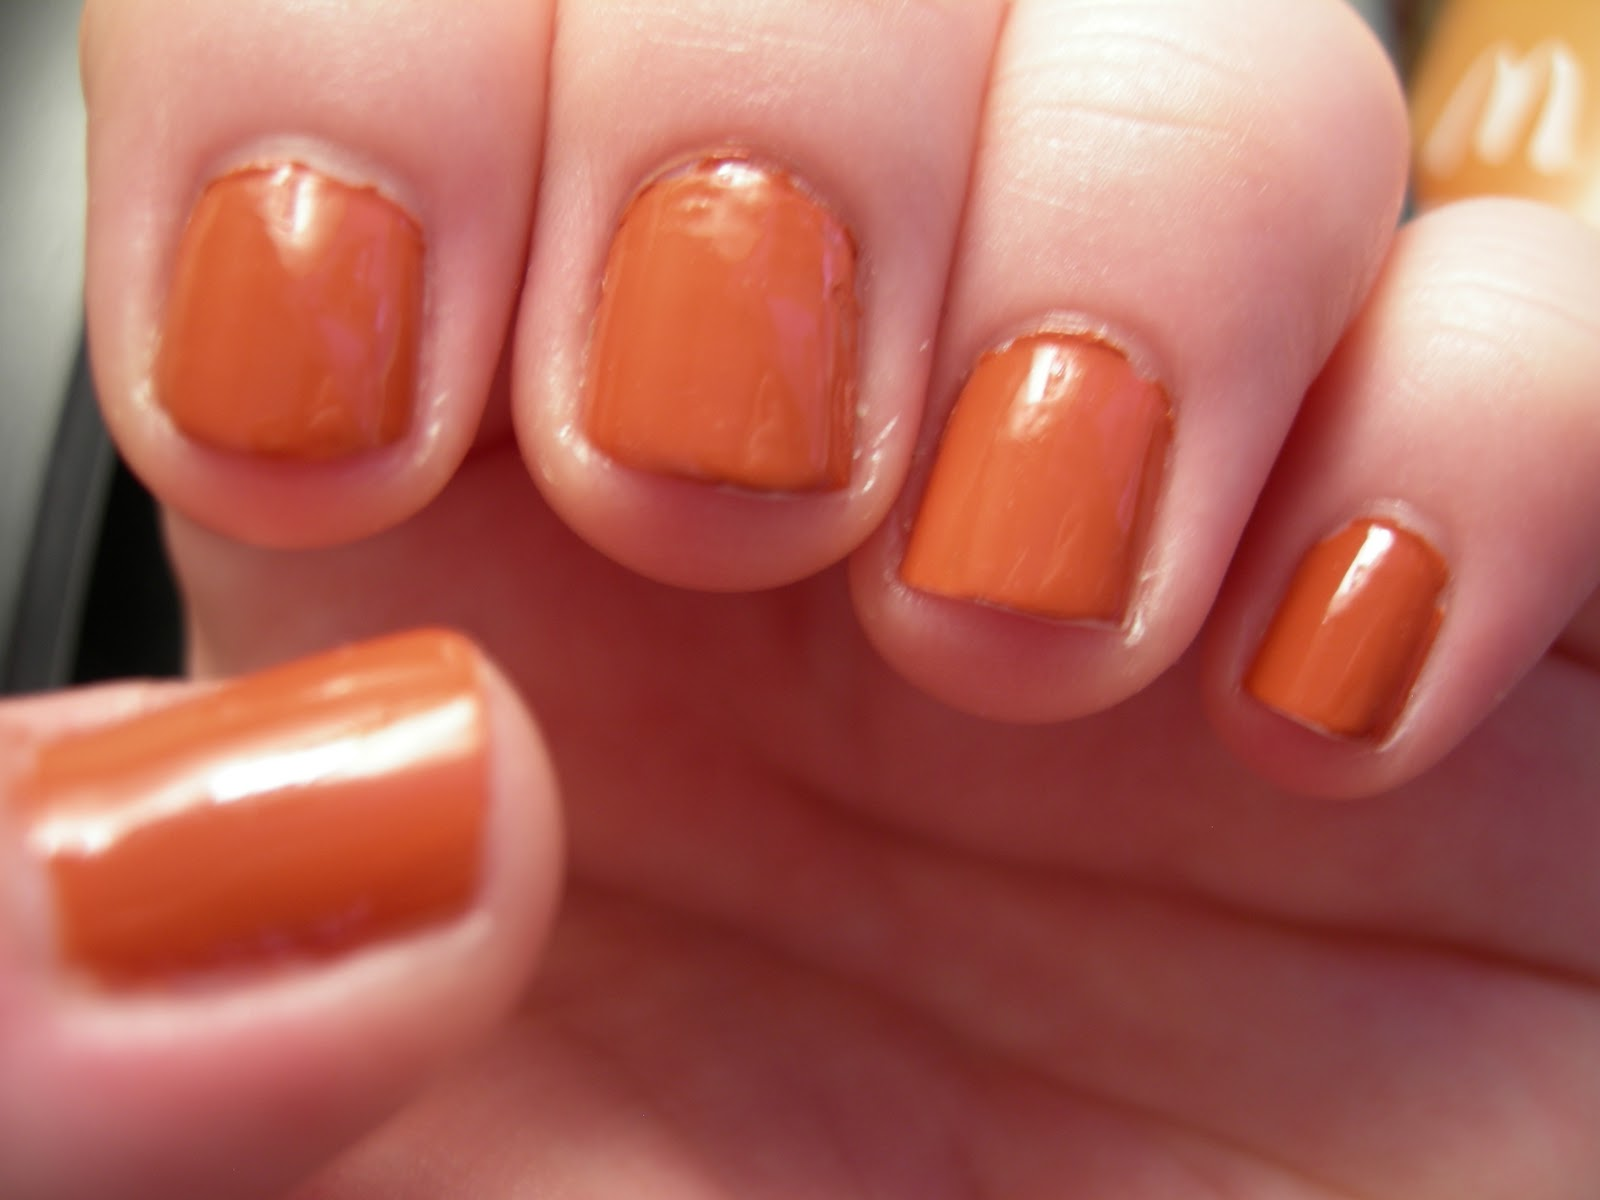 Opi A Good Mandarin Is Hard To Find Vs Hot And Spicy Good thing my polish hasn t